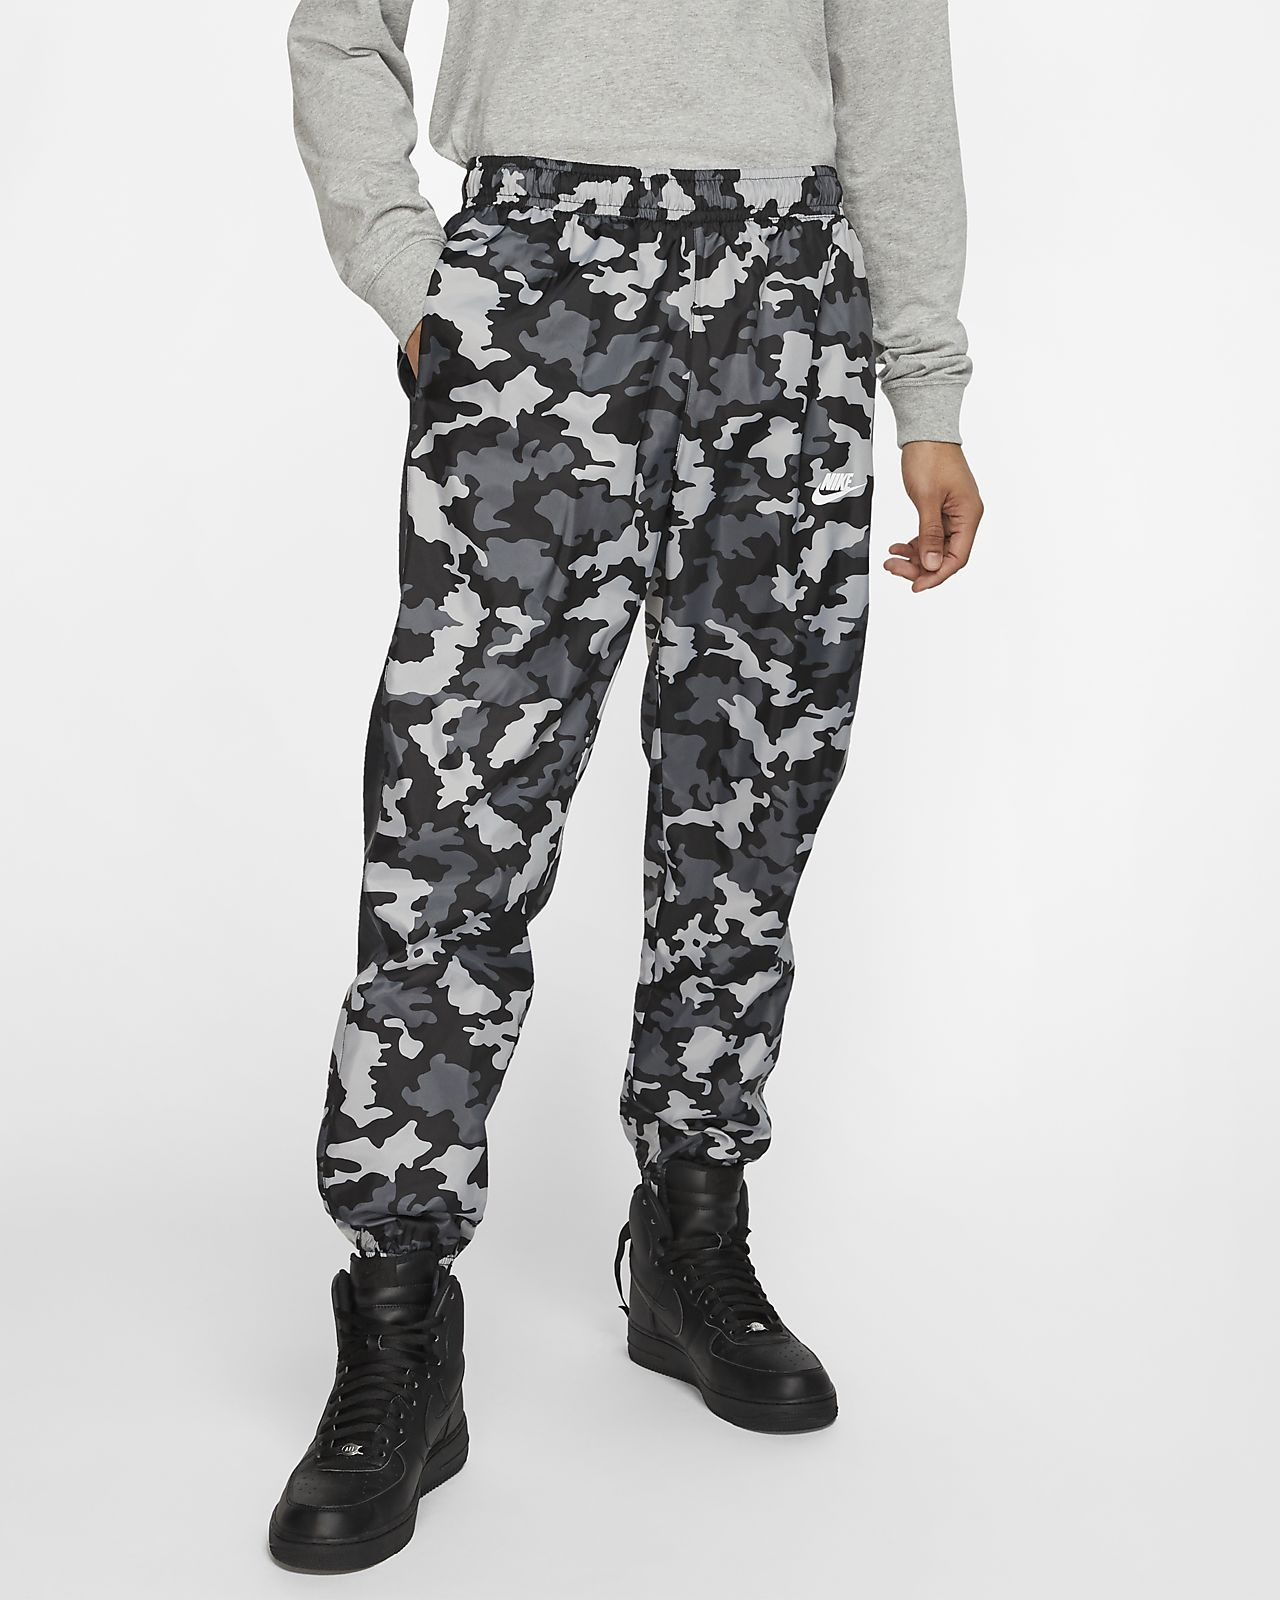 Nike Sportswear Men's Woven Camo Tracksuit Bottoms